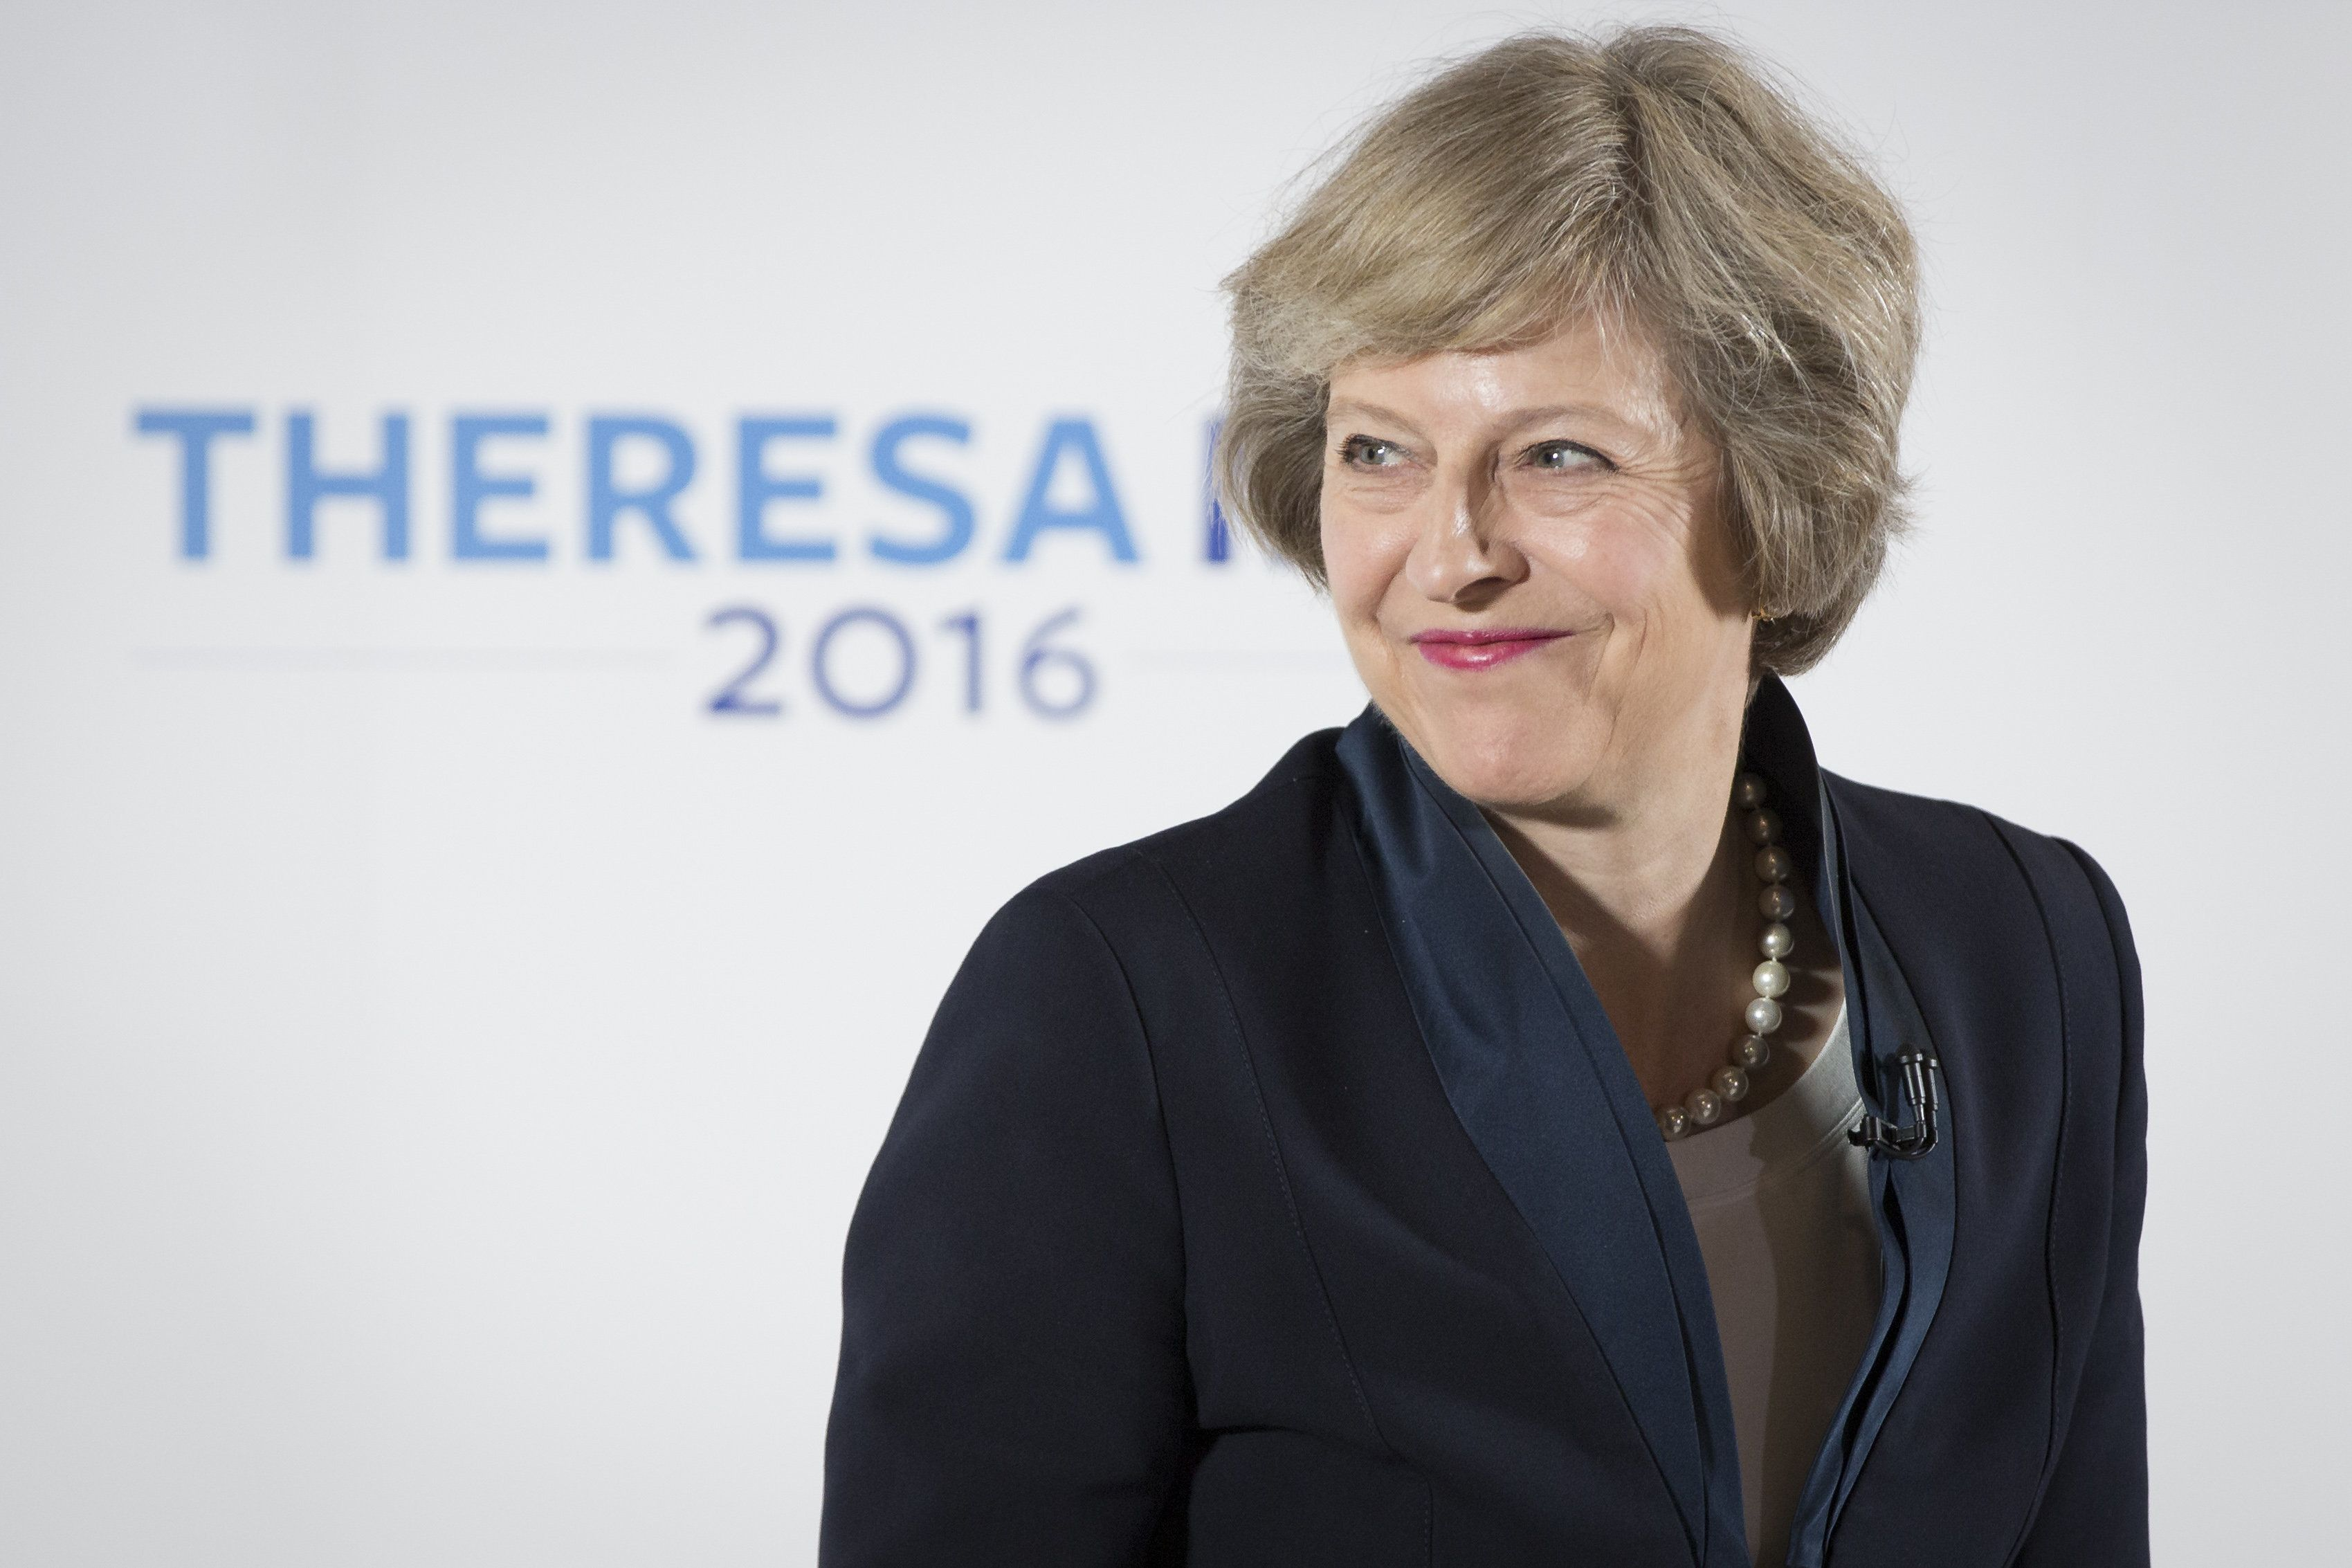 May was said to have told Osborne that he needed to showmore humility if he ever wanted to be prime